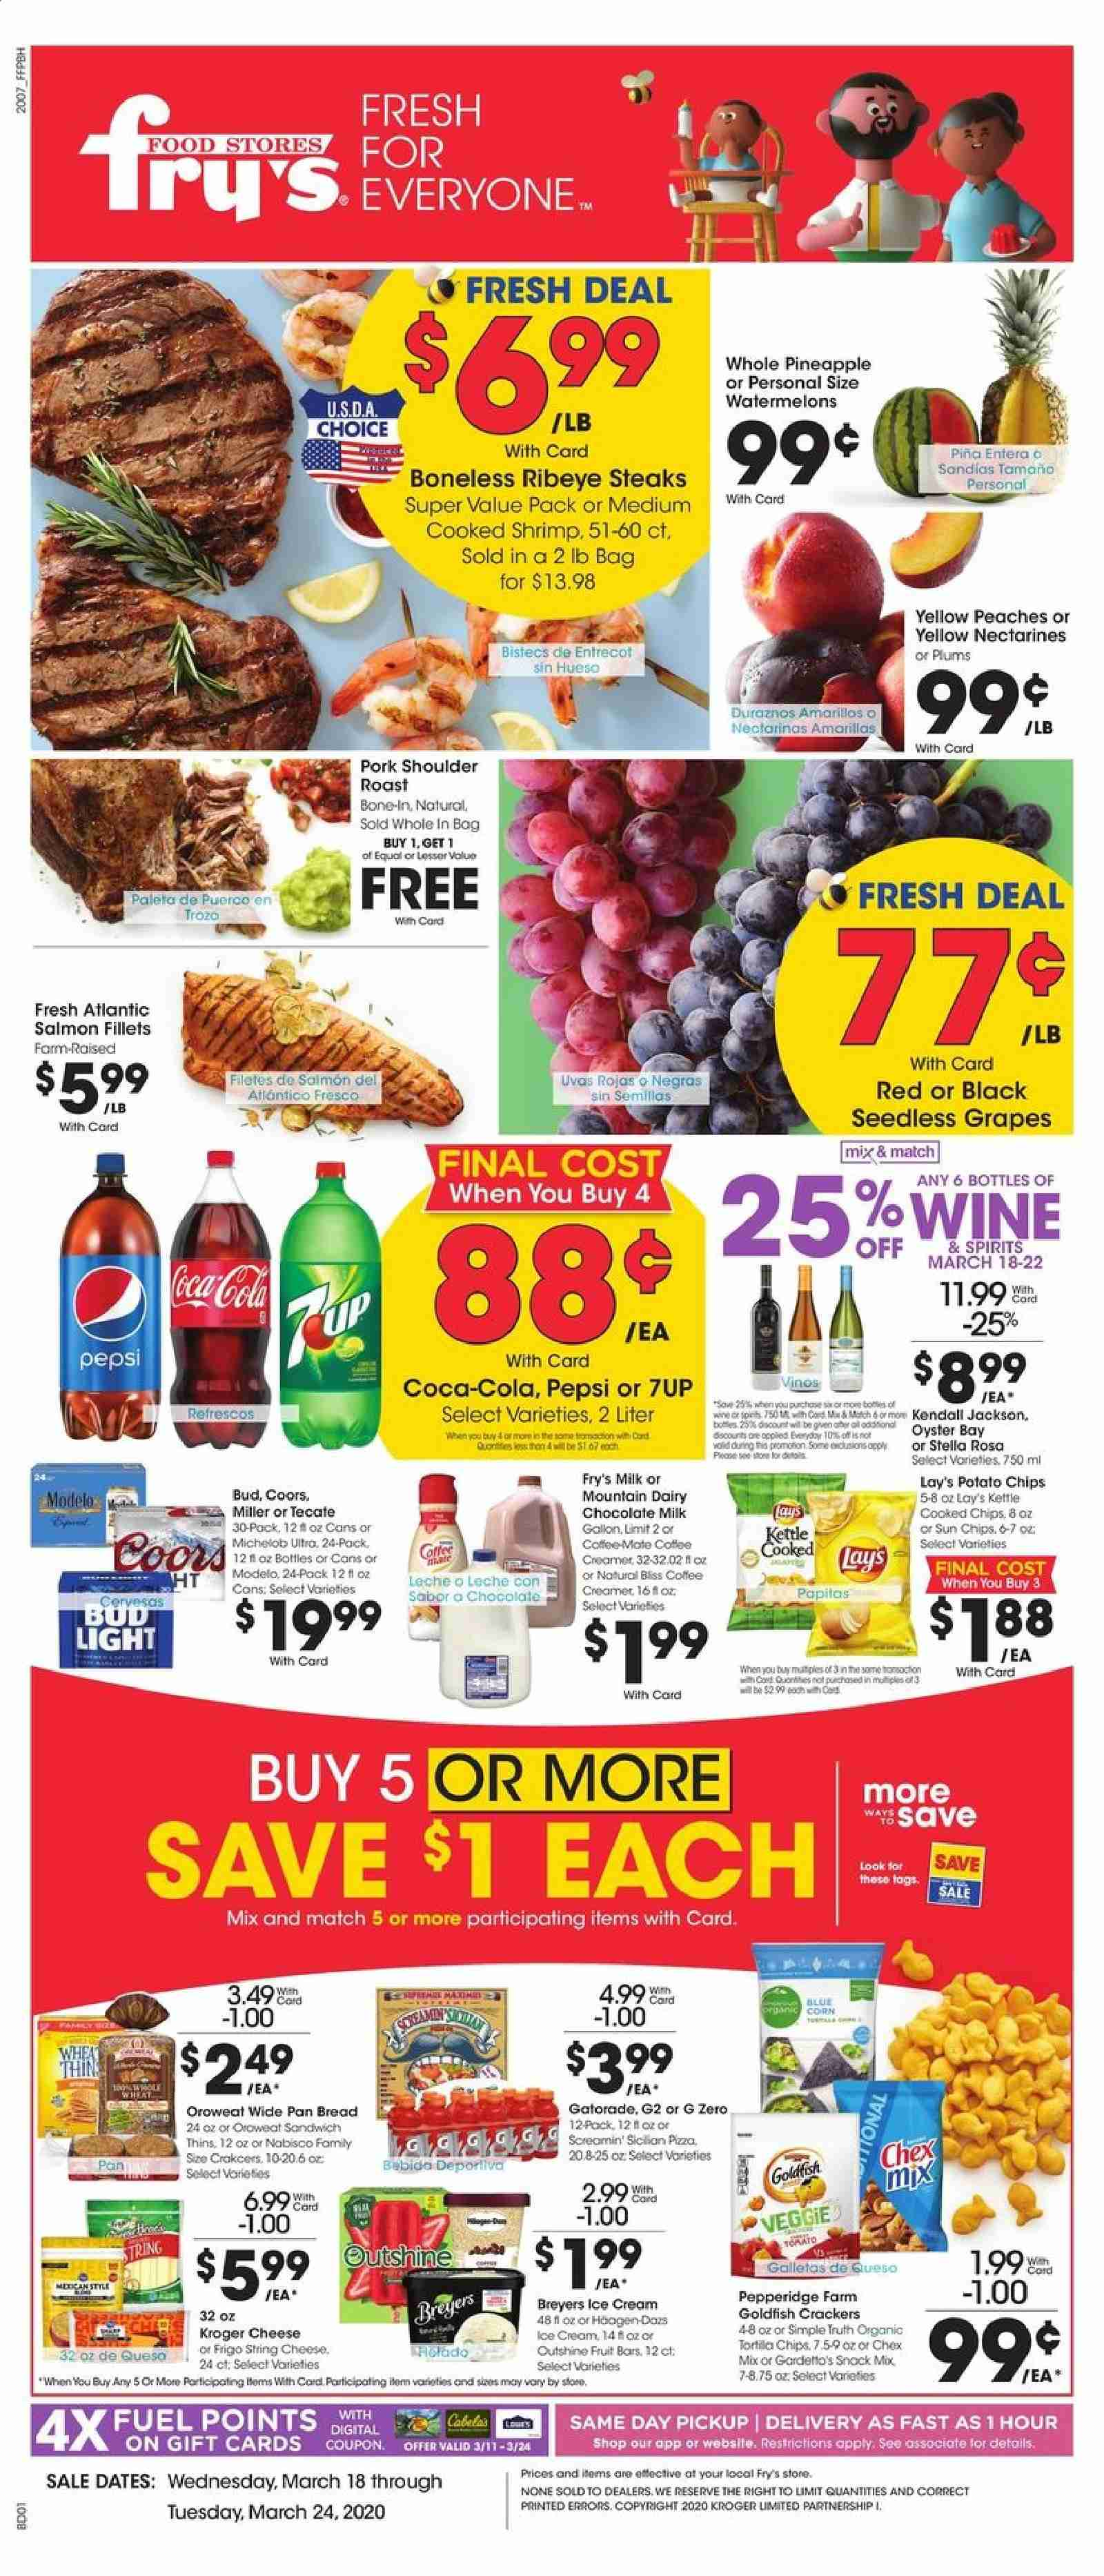 Fry's Flyer  - 03.18.2020 - 03.24.2020. Page 1.